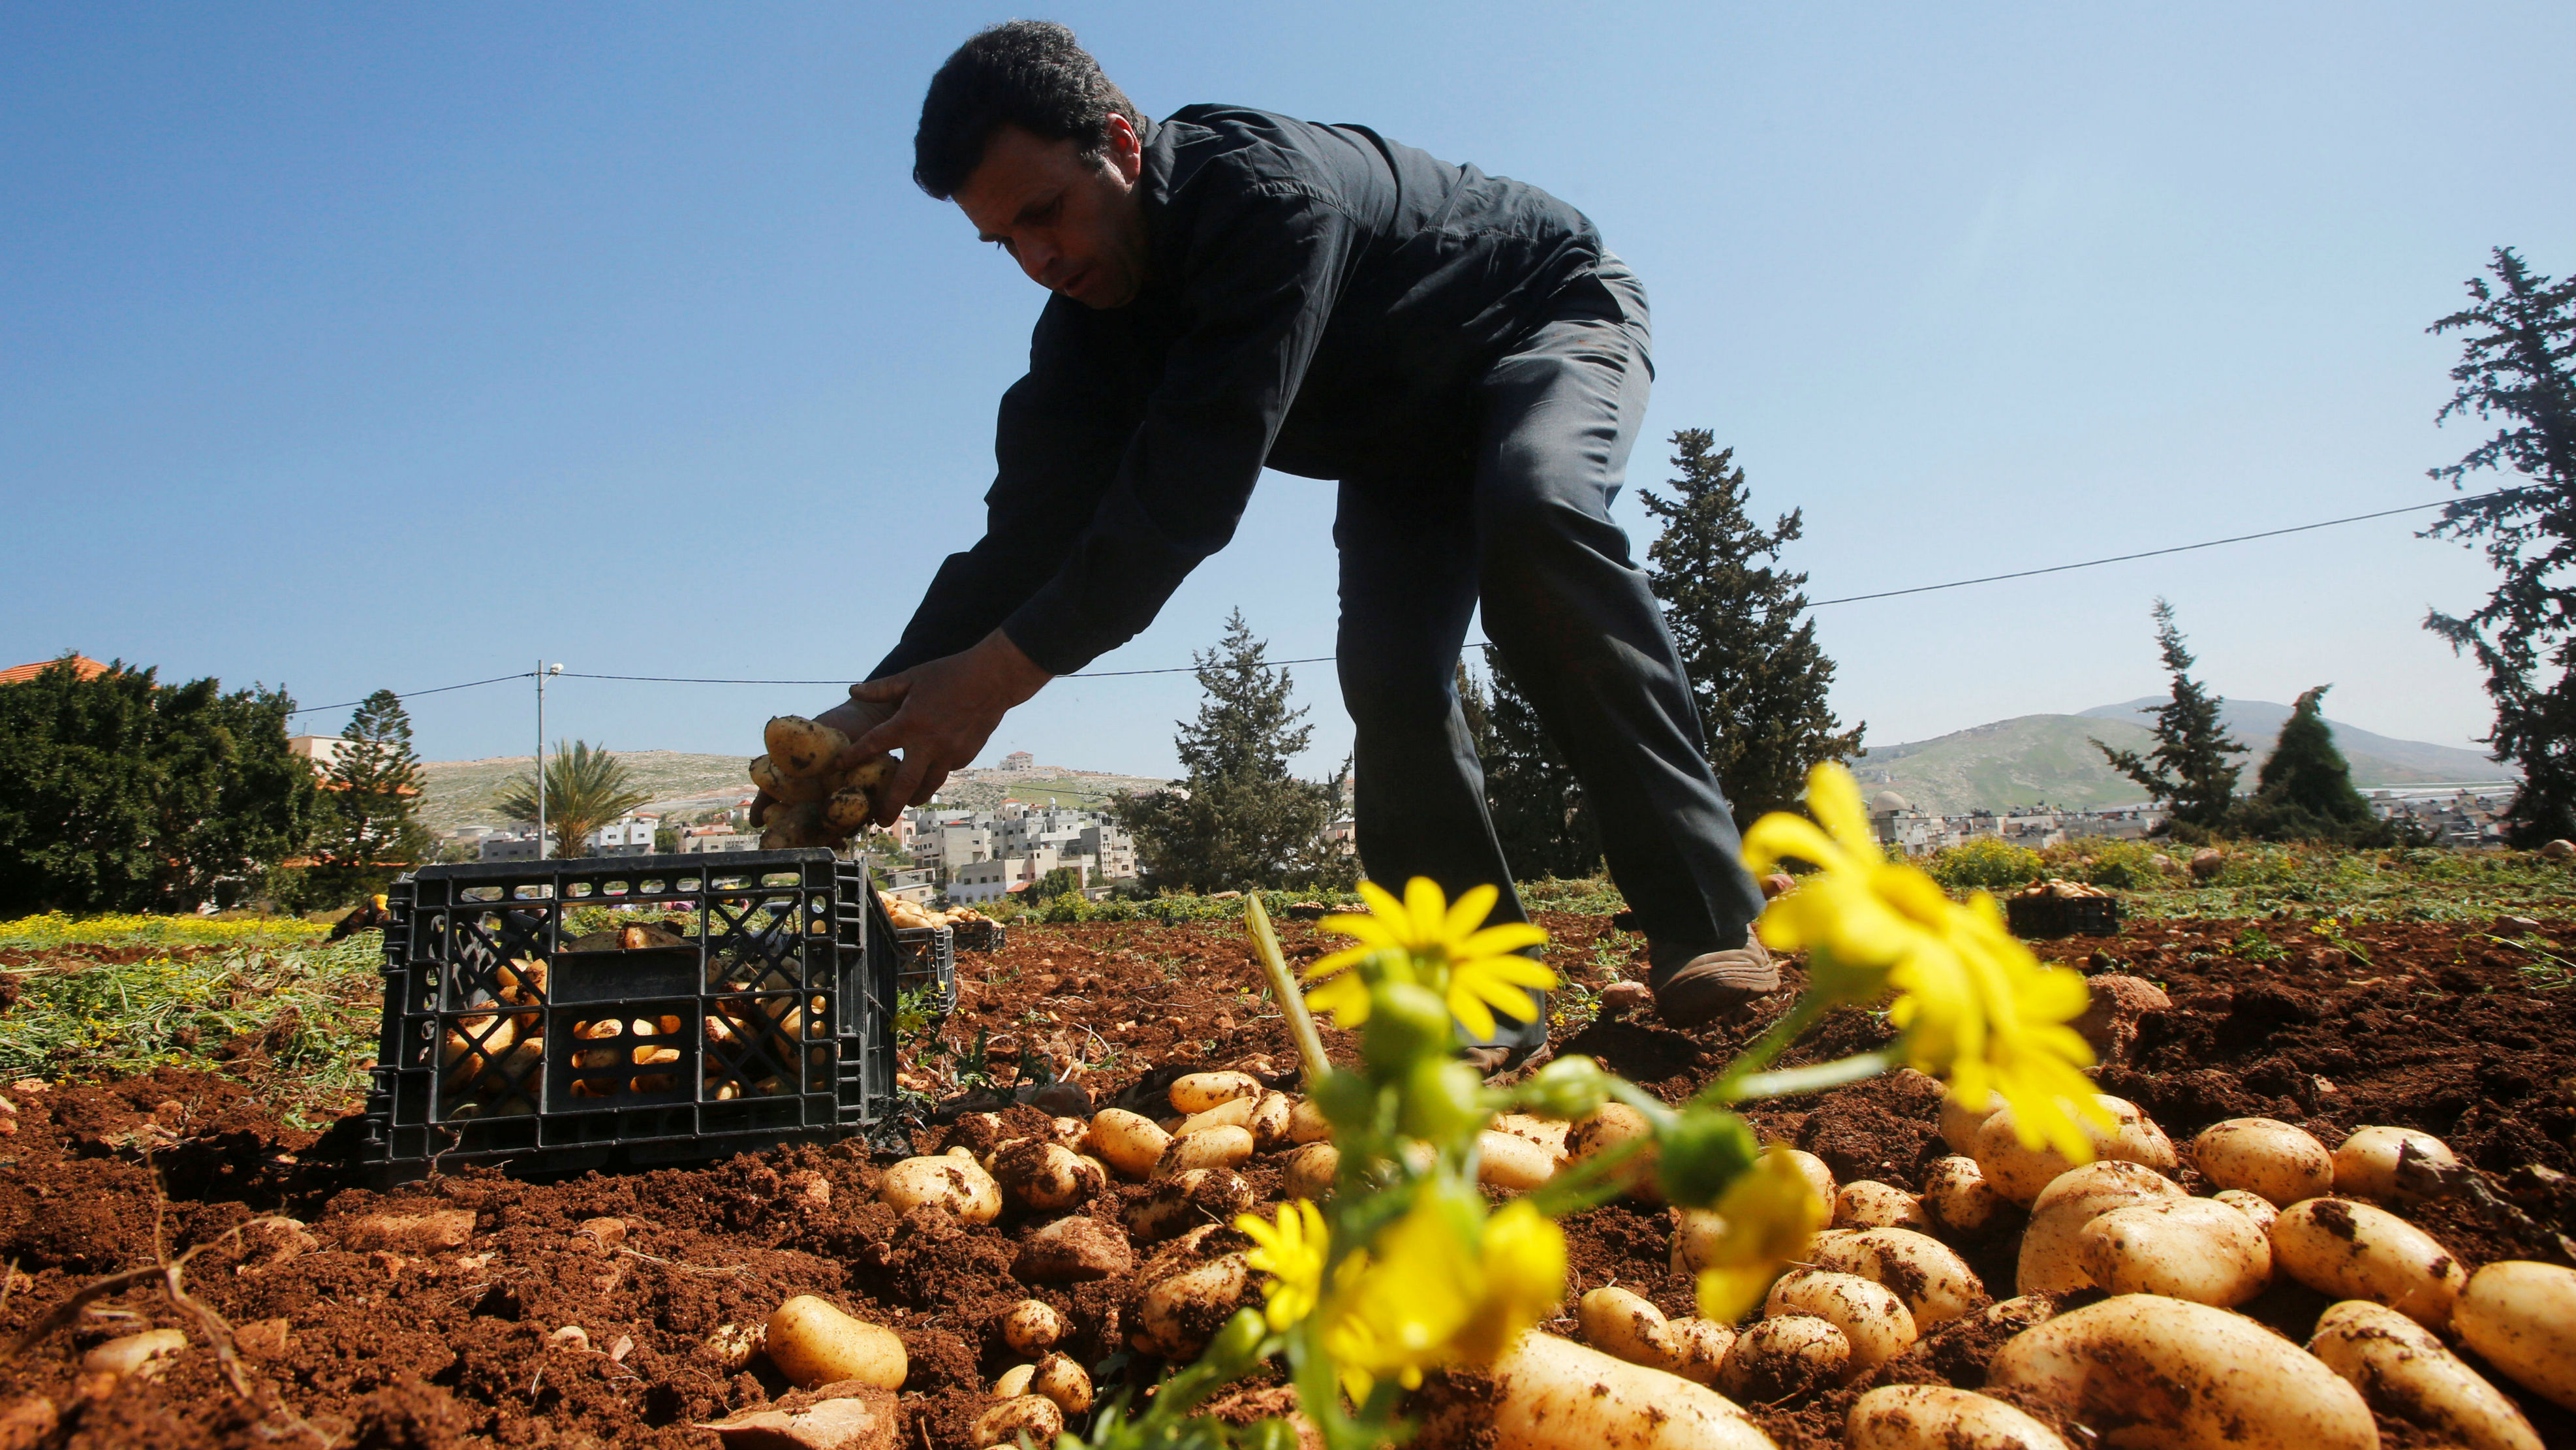 A Palestinian farmer collects potatoes during harvest in a field in the West Bank village of Al-Fara near Jenin March 6, 2017.